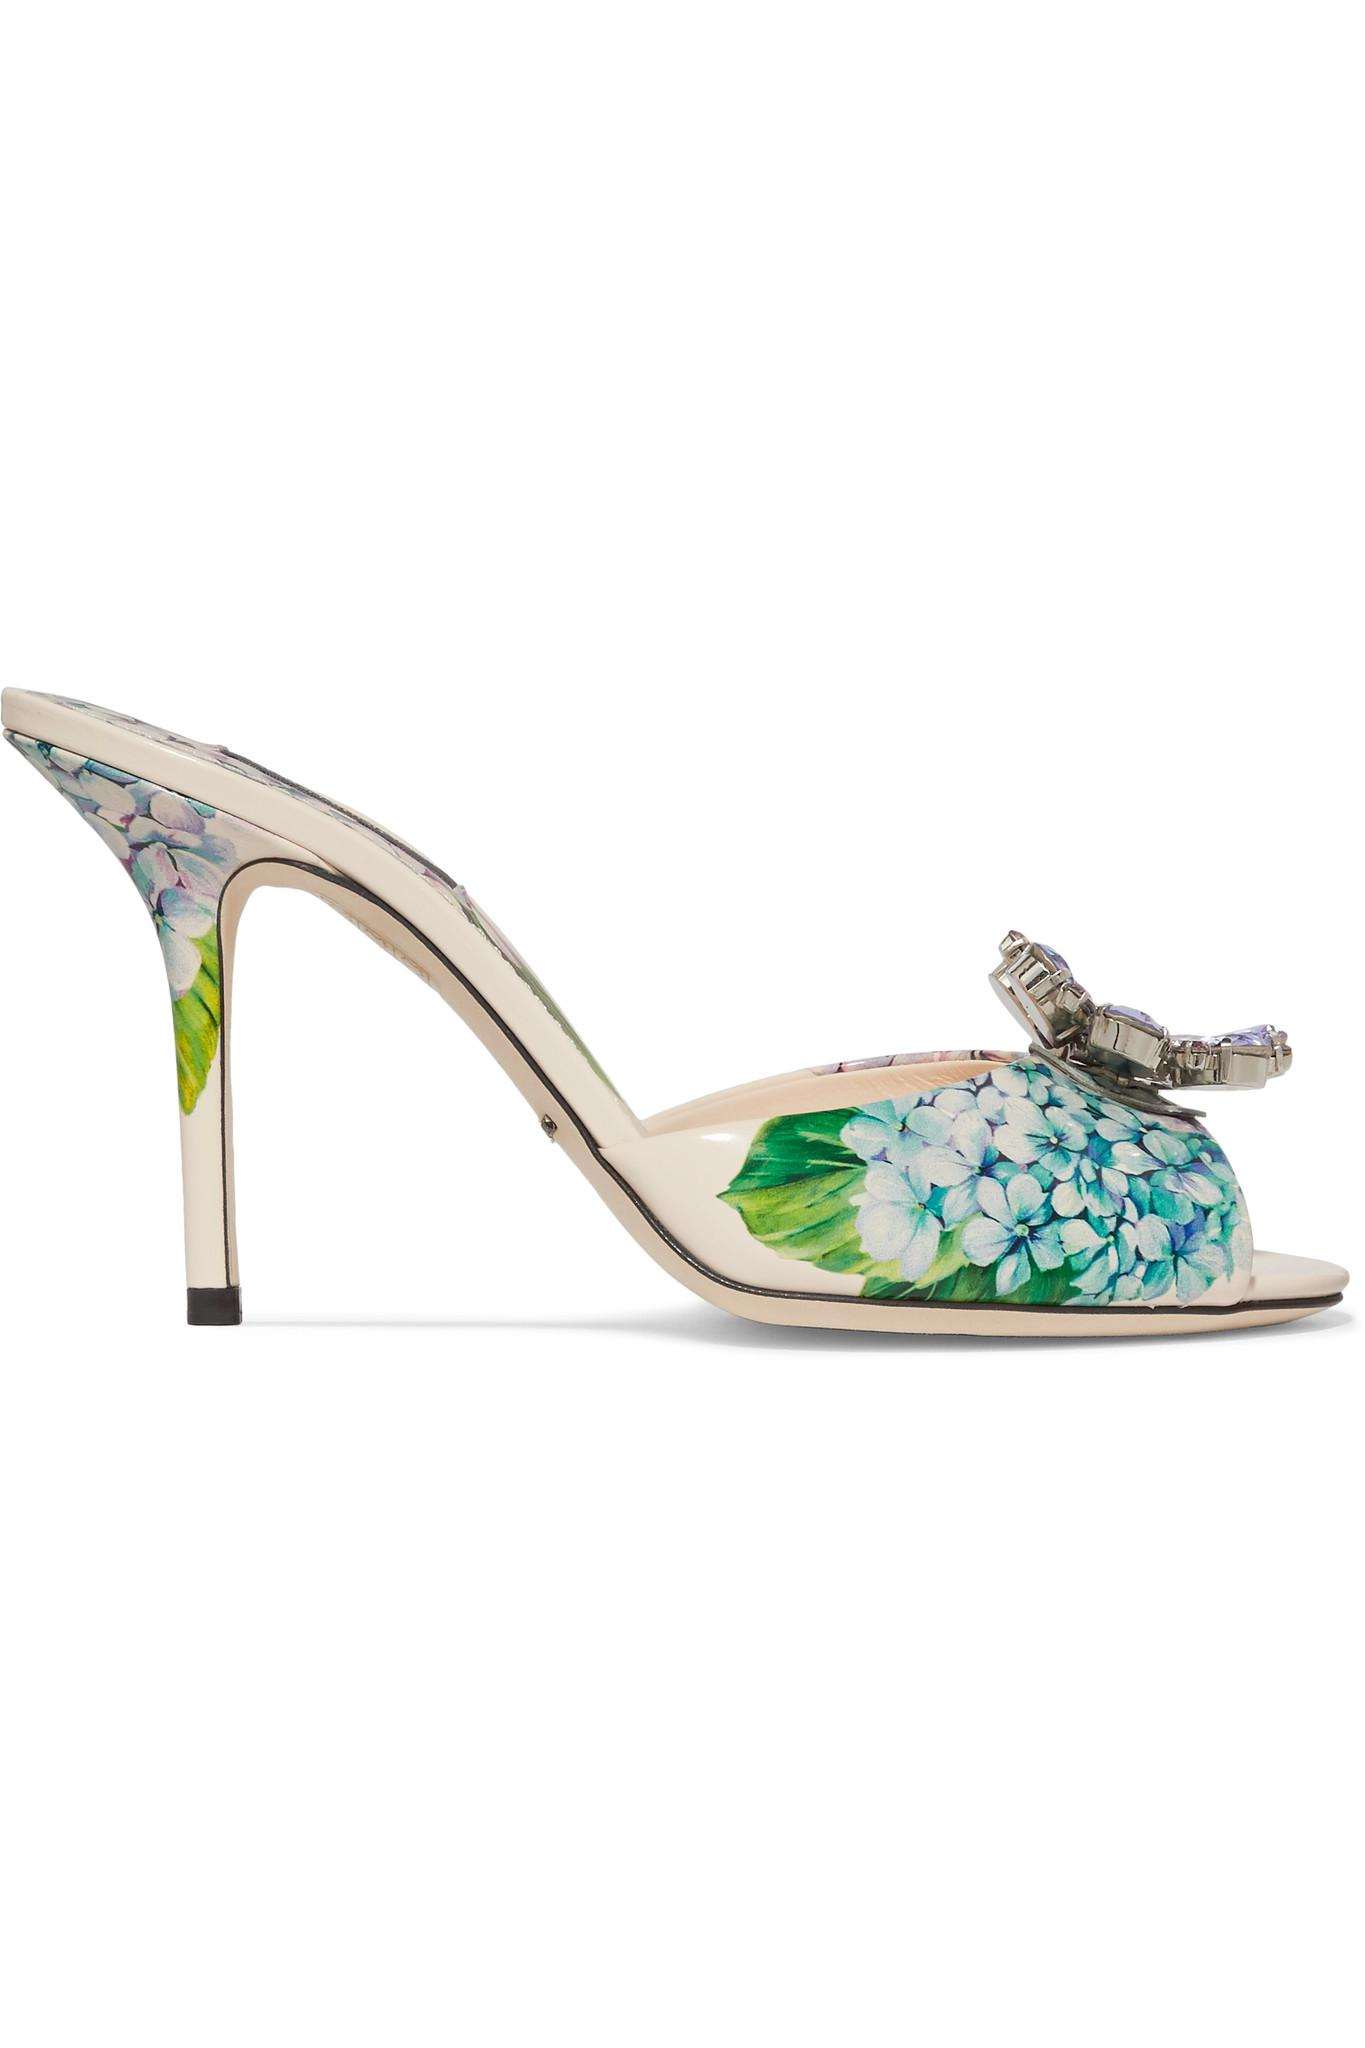 Crystal-embellished Floral-print Patent-leather Slingback Pumps - Blue Dolce & Gabbana ivDs5D